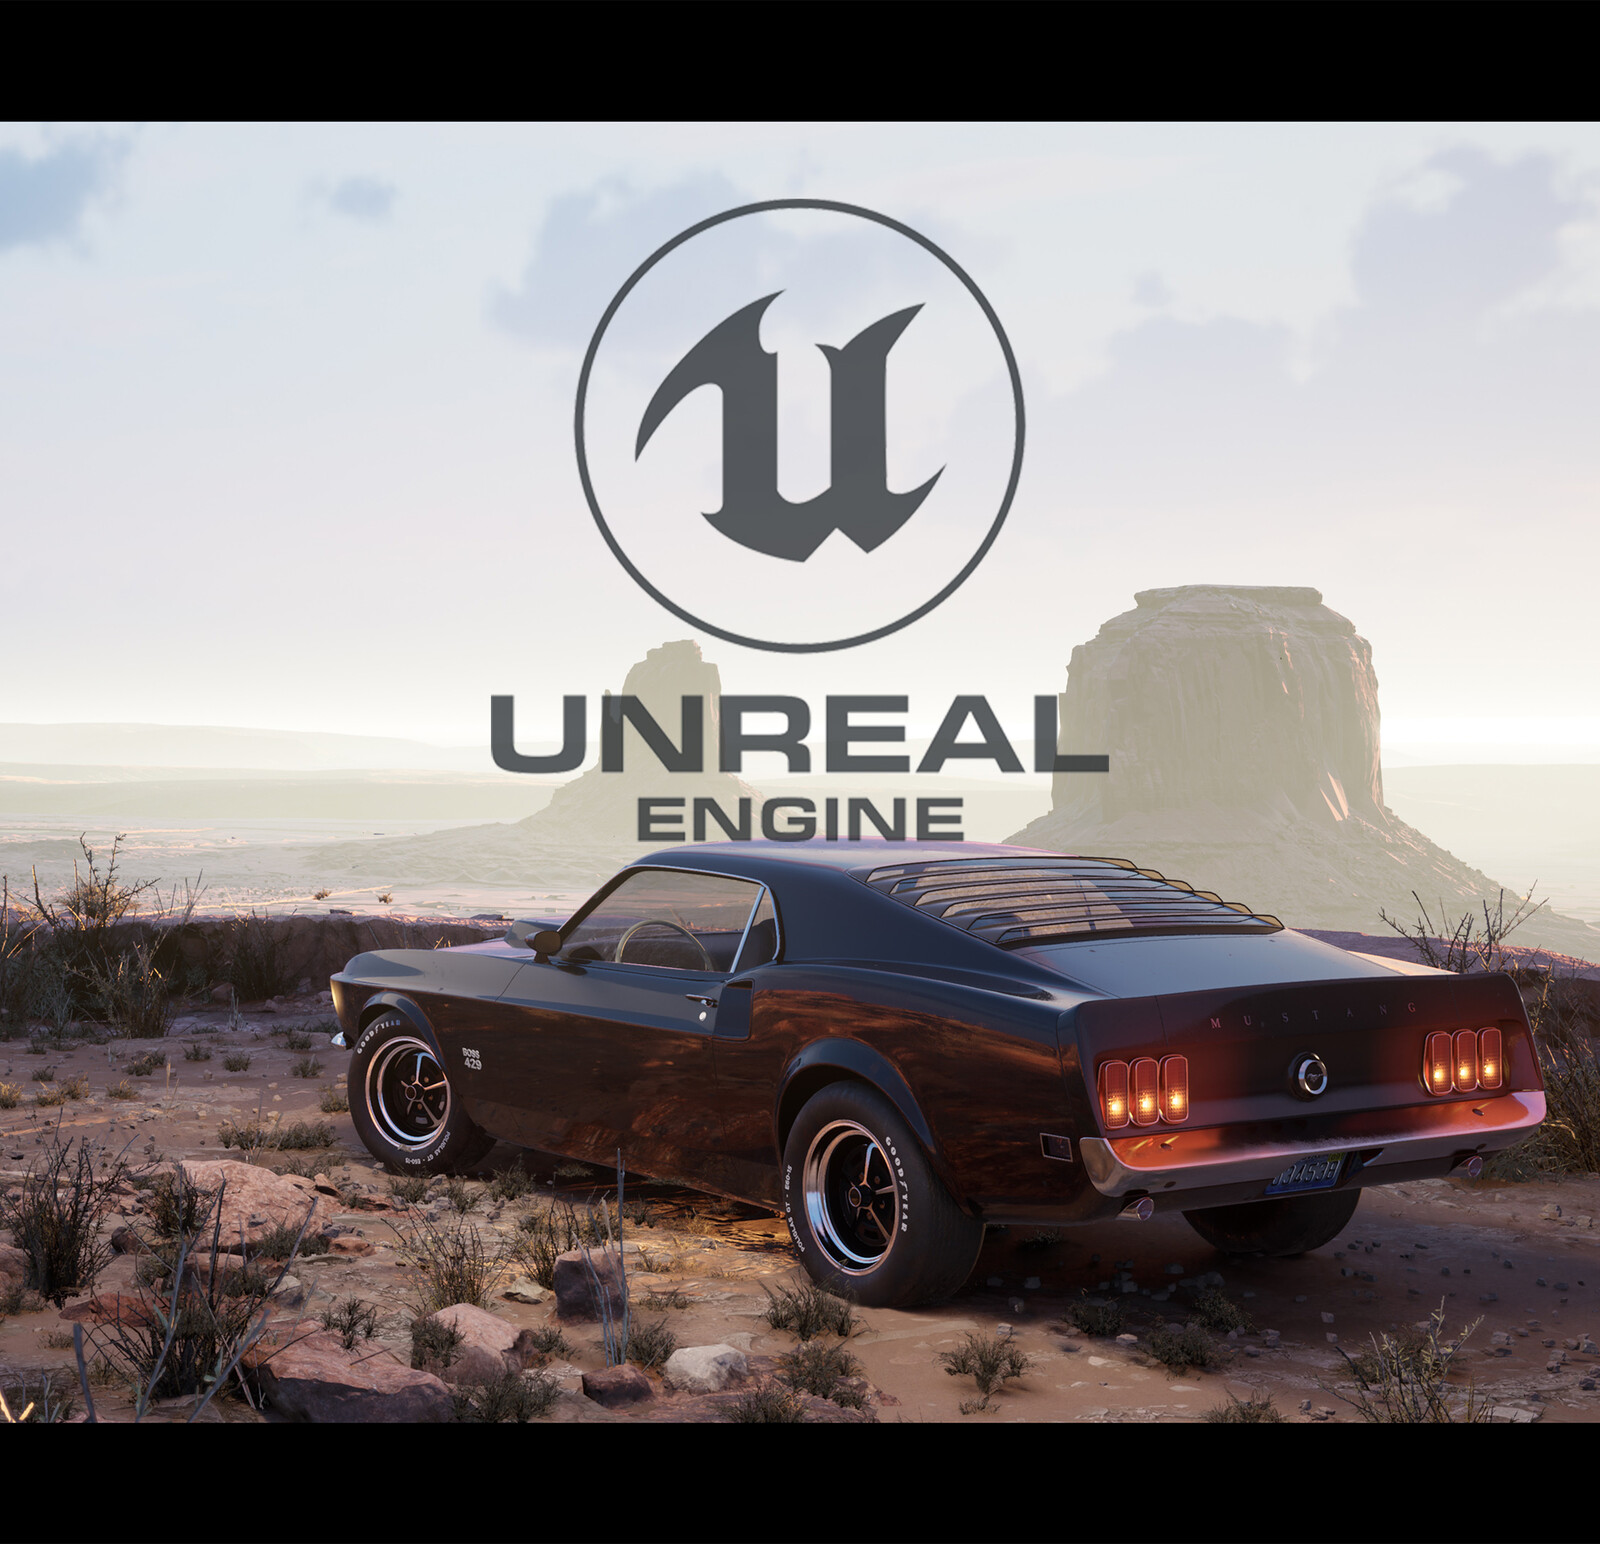 Unreal Engine - Mustang 429 at Monument Valley